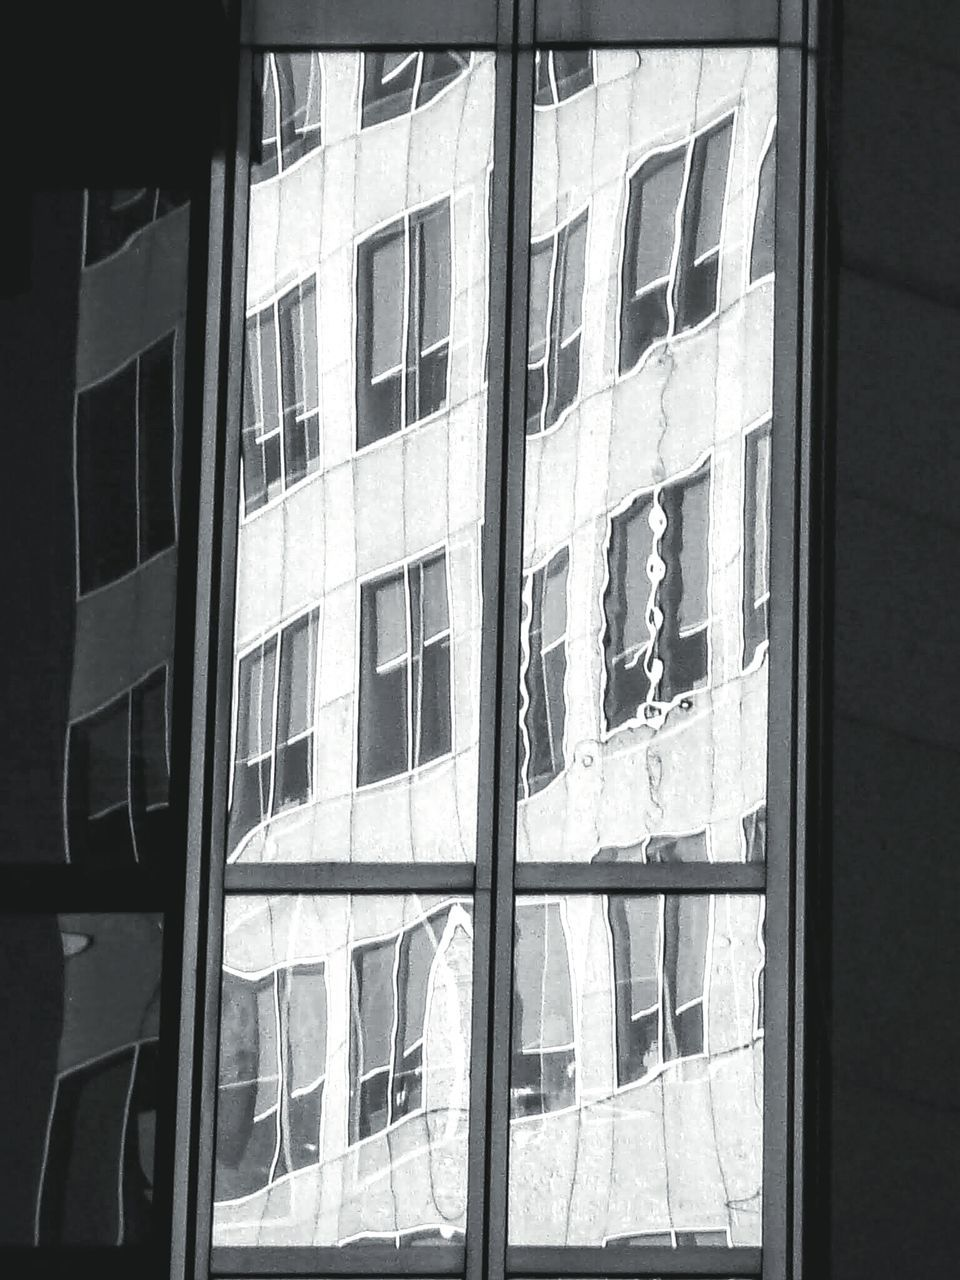 Building Reflecting On Glass Window